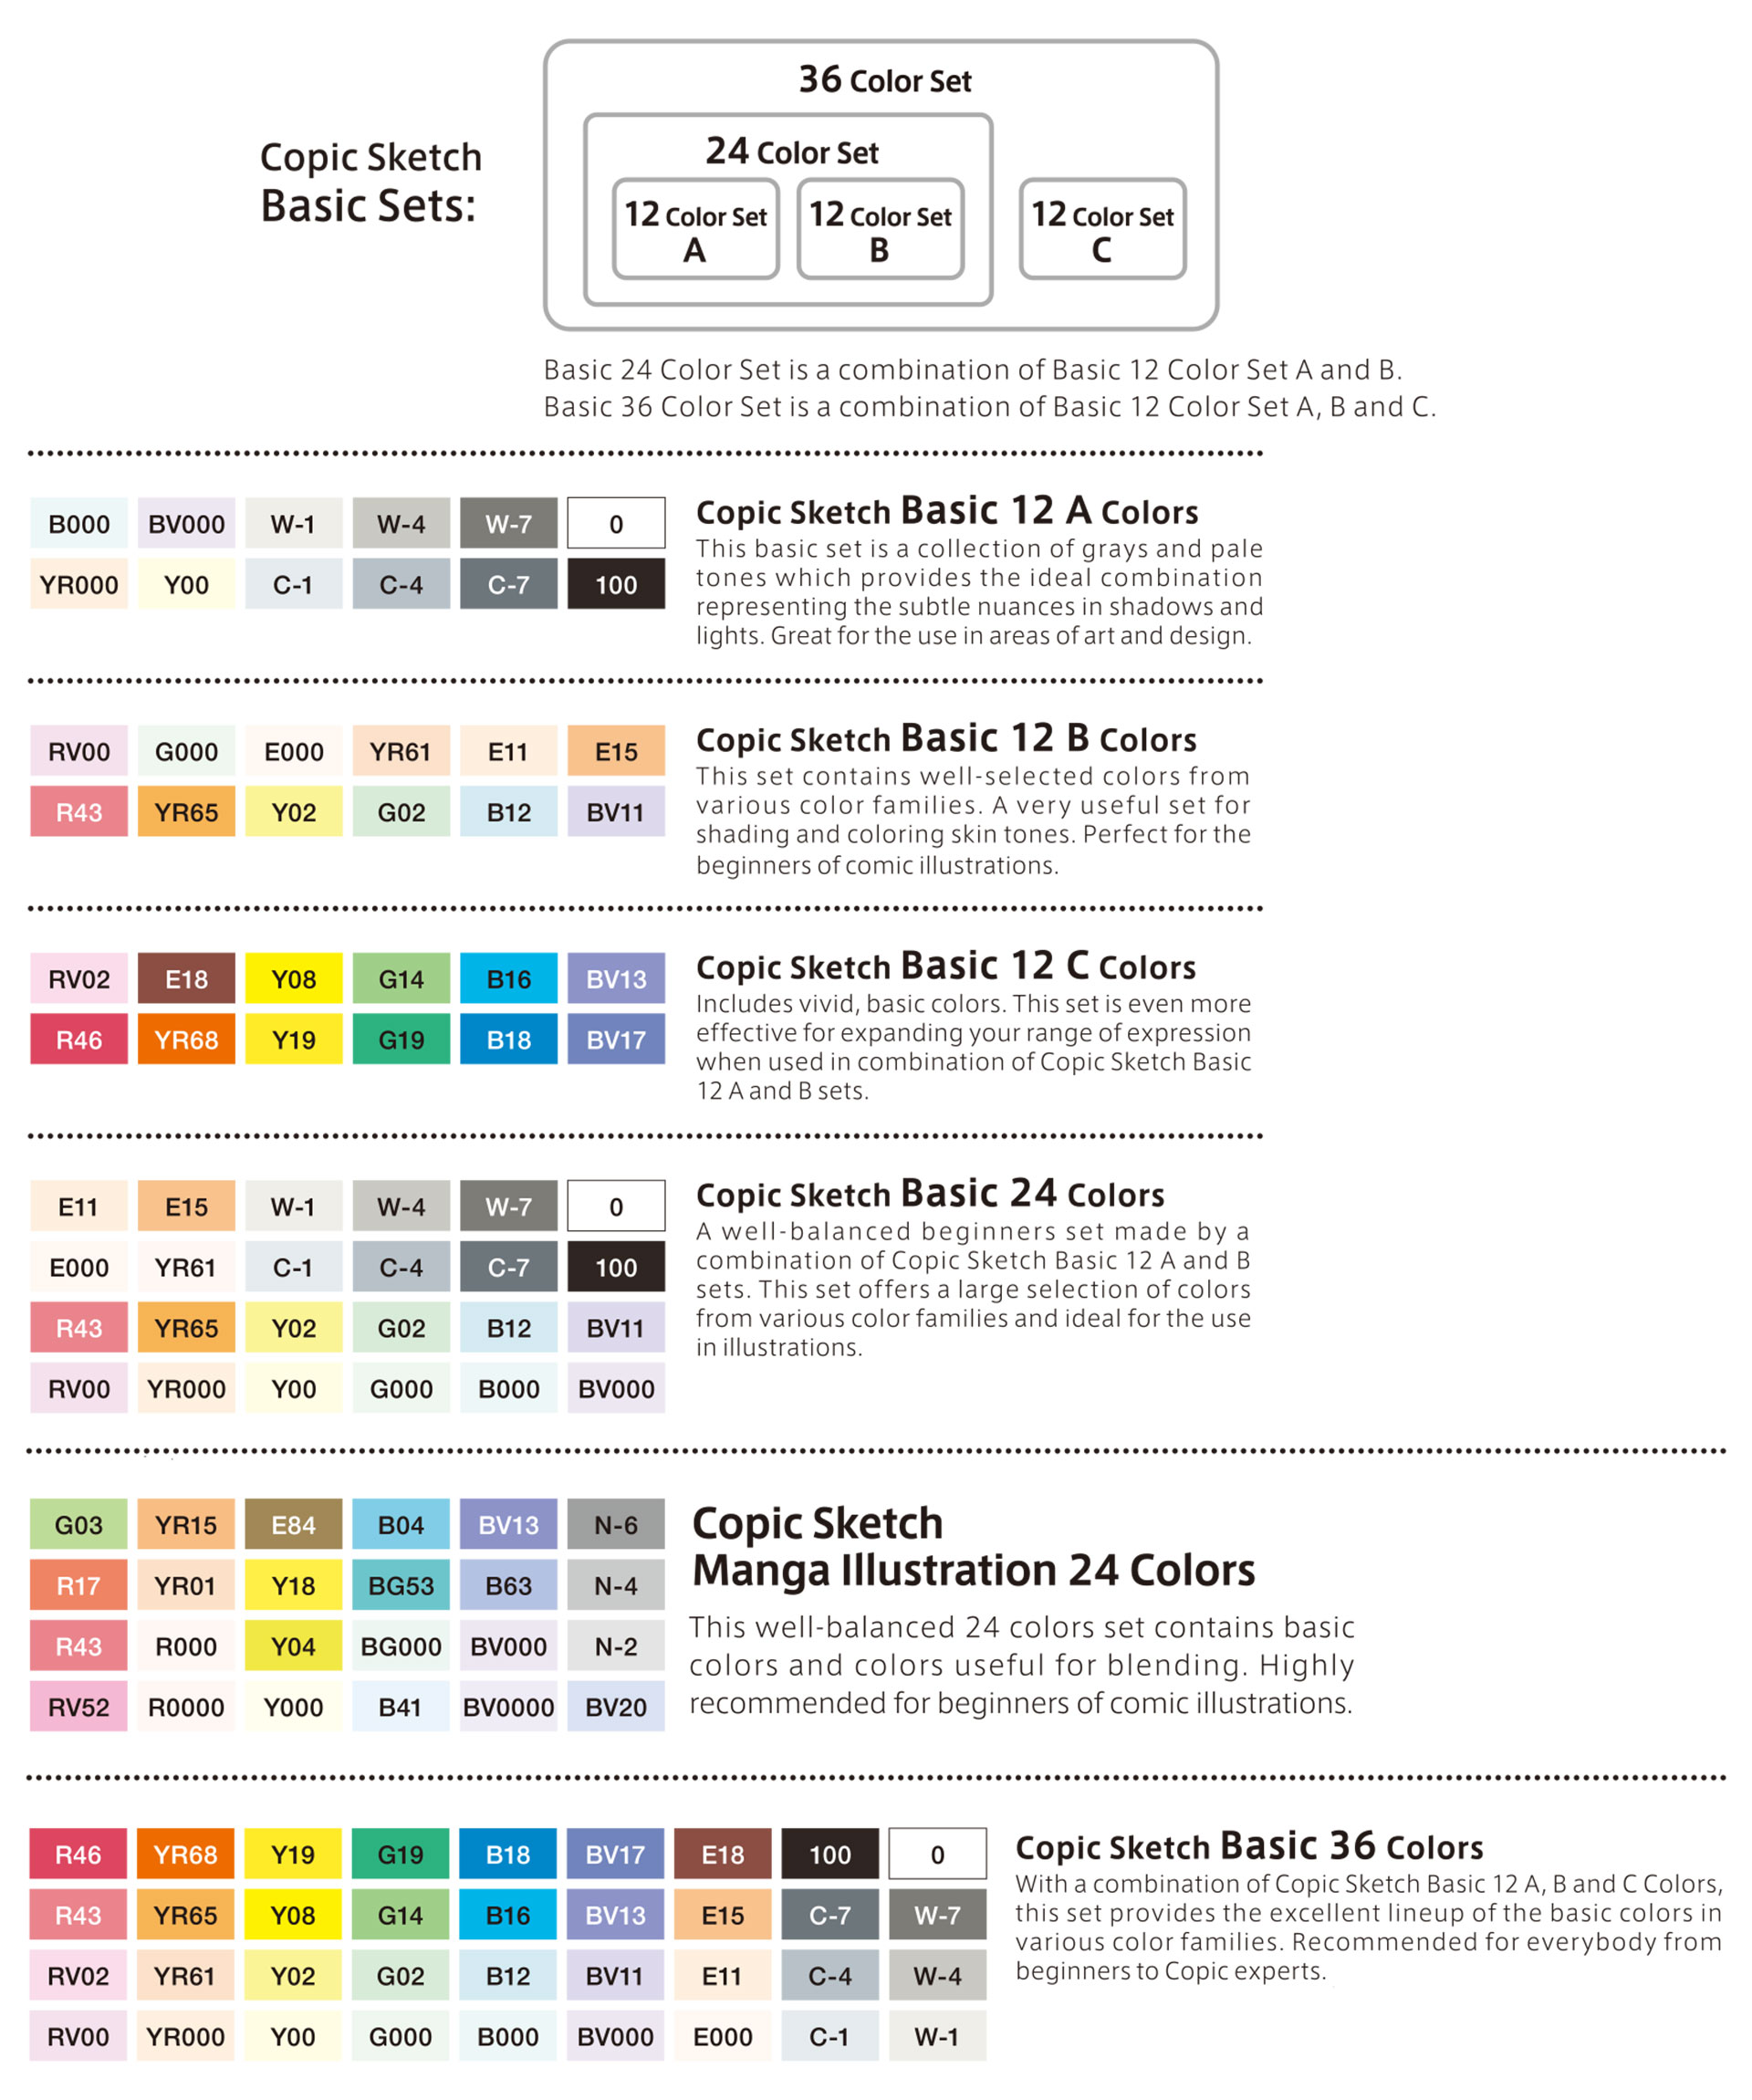 Copic-12-24-36-Sketch-Sets-Colours-and-set-information